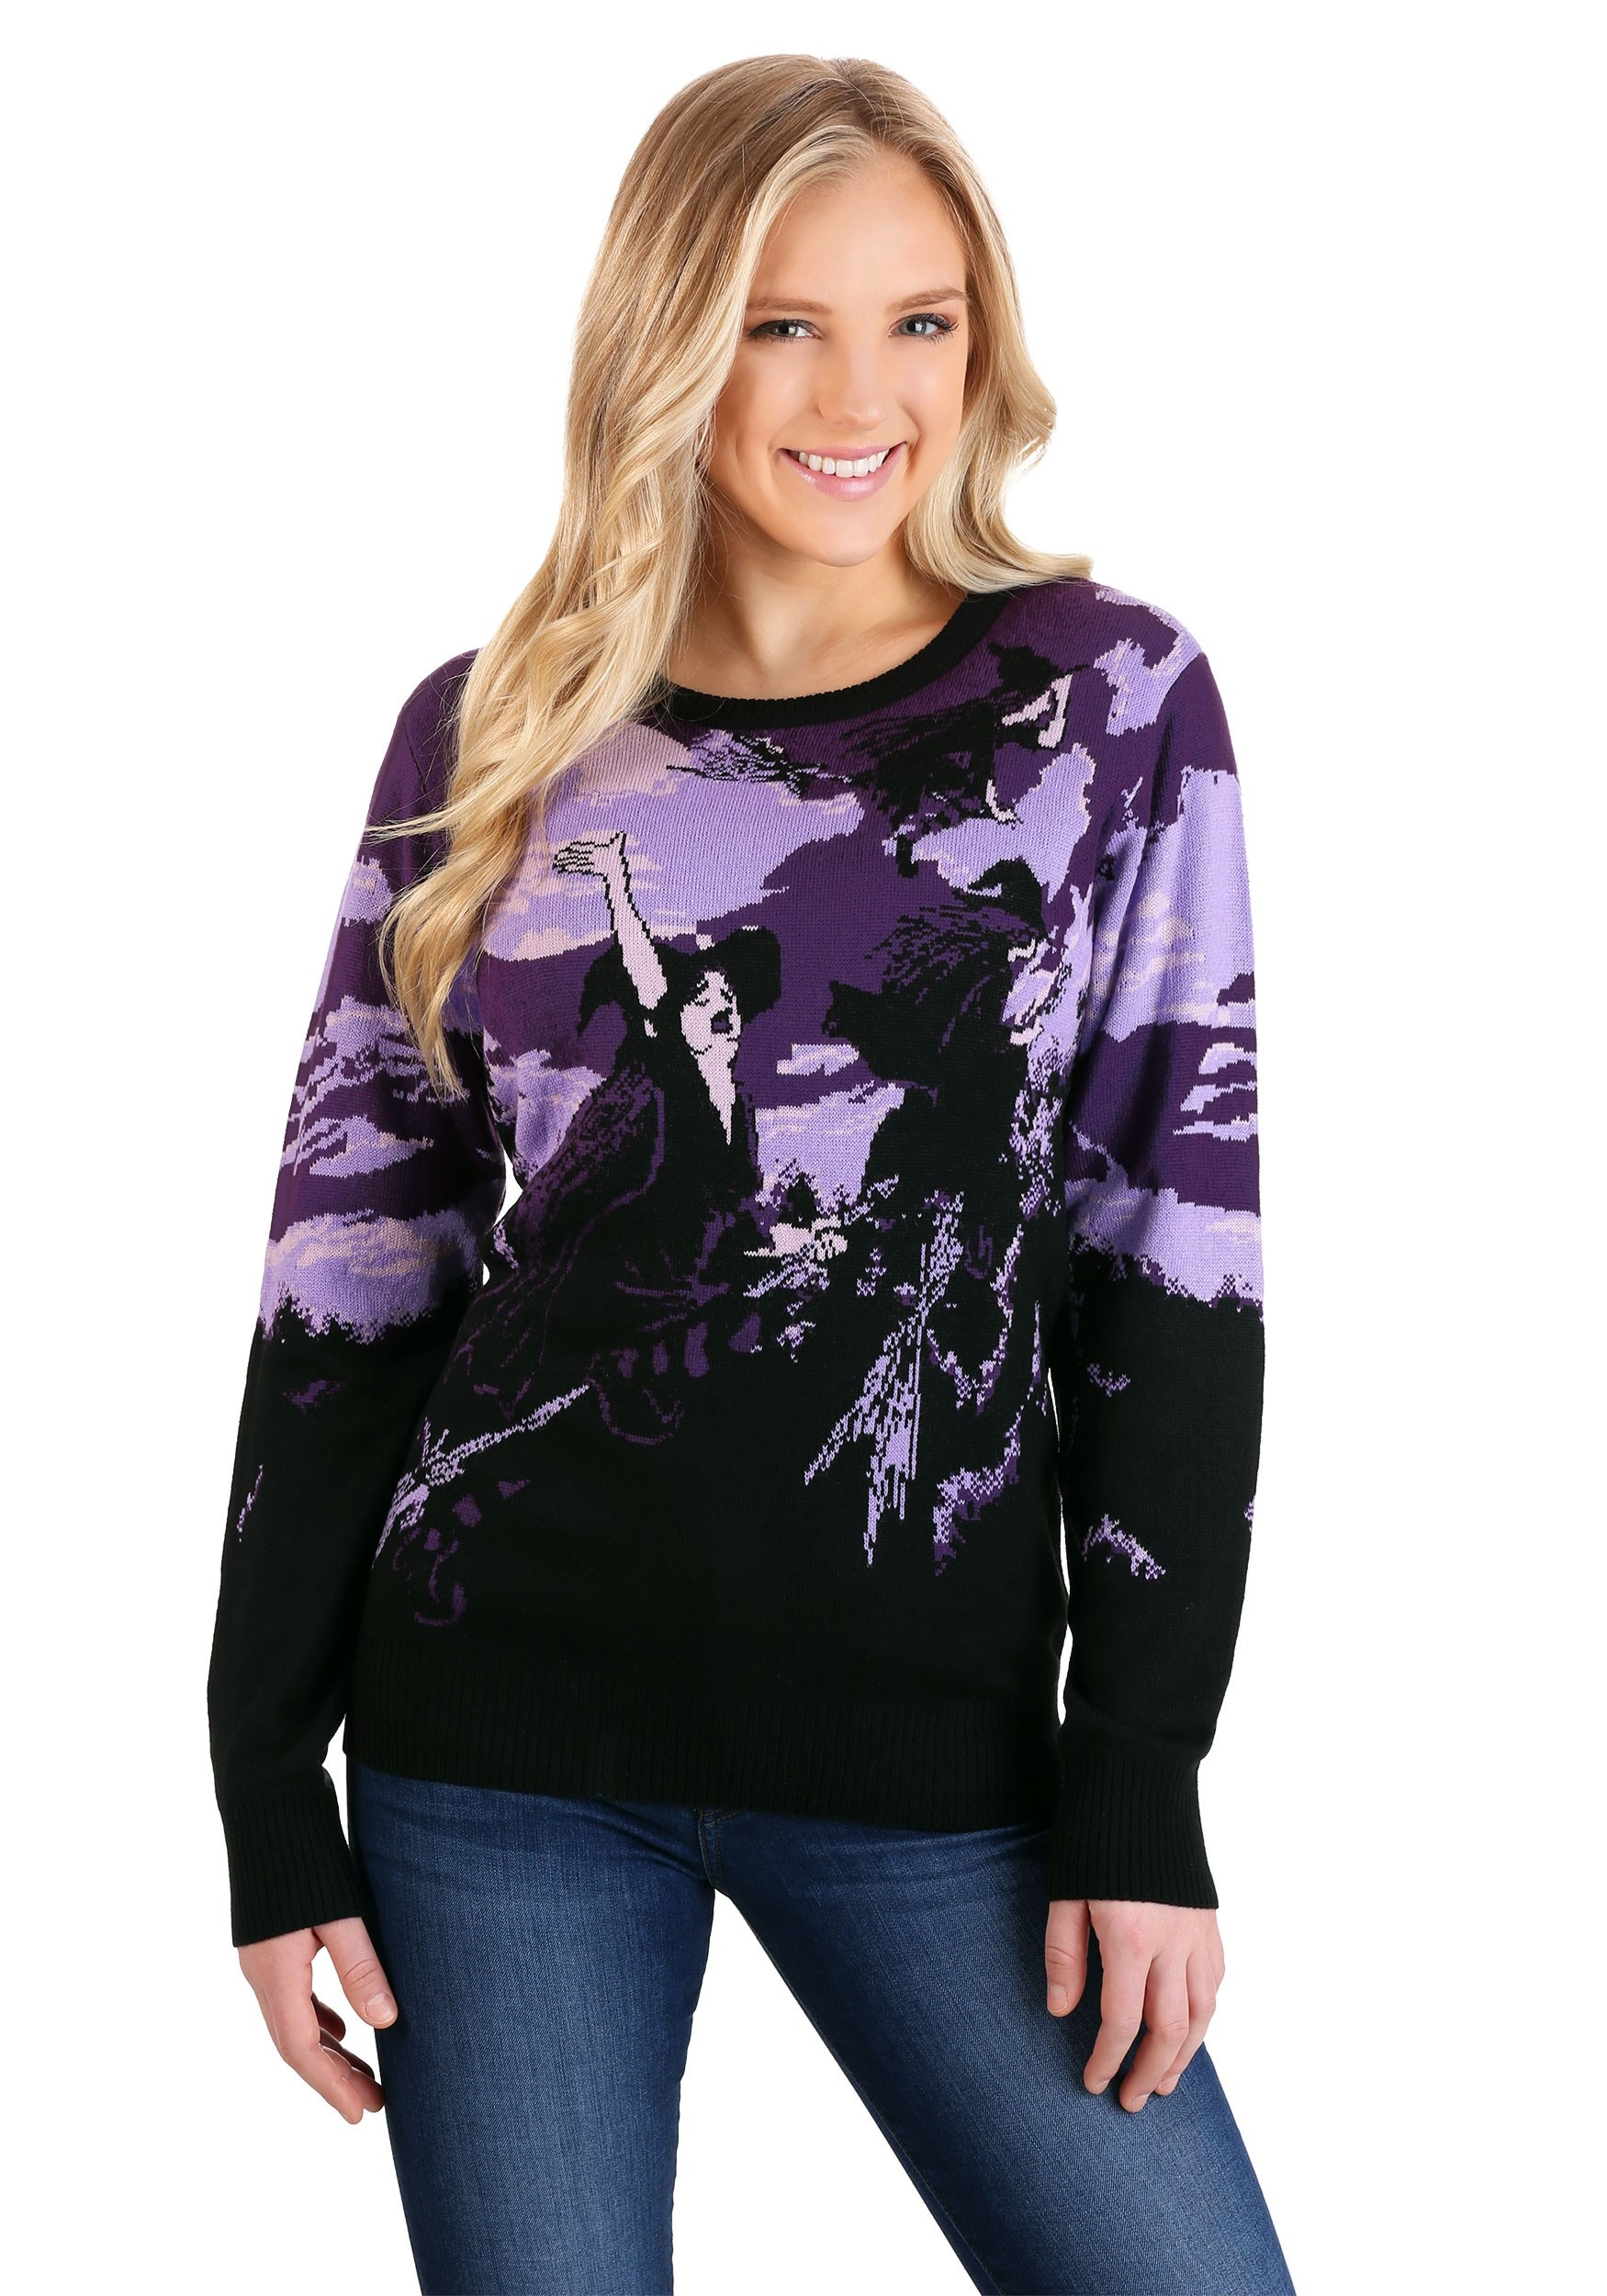 Witch's Moonlight Ride Halloween Sweater for Adults